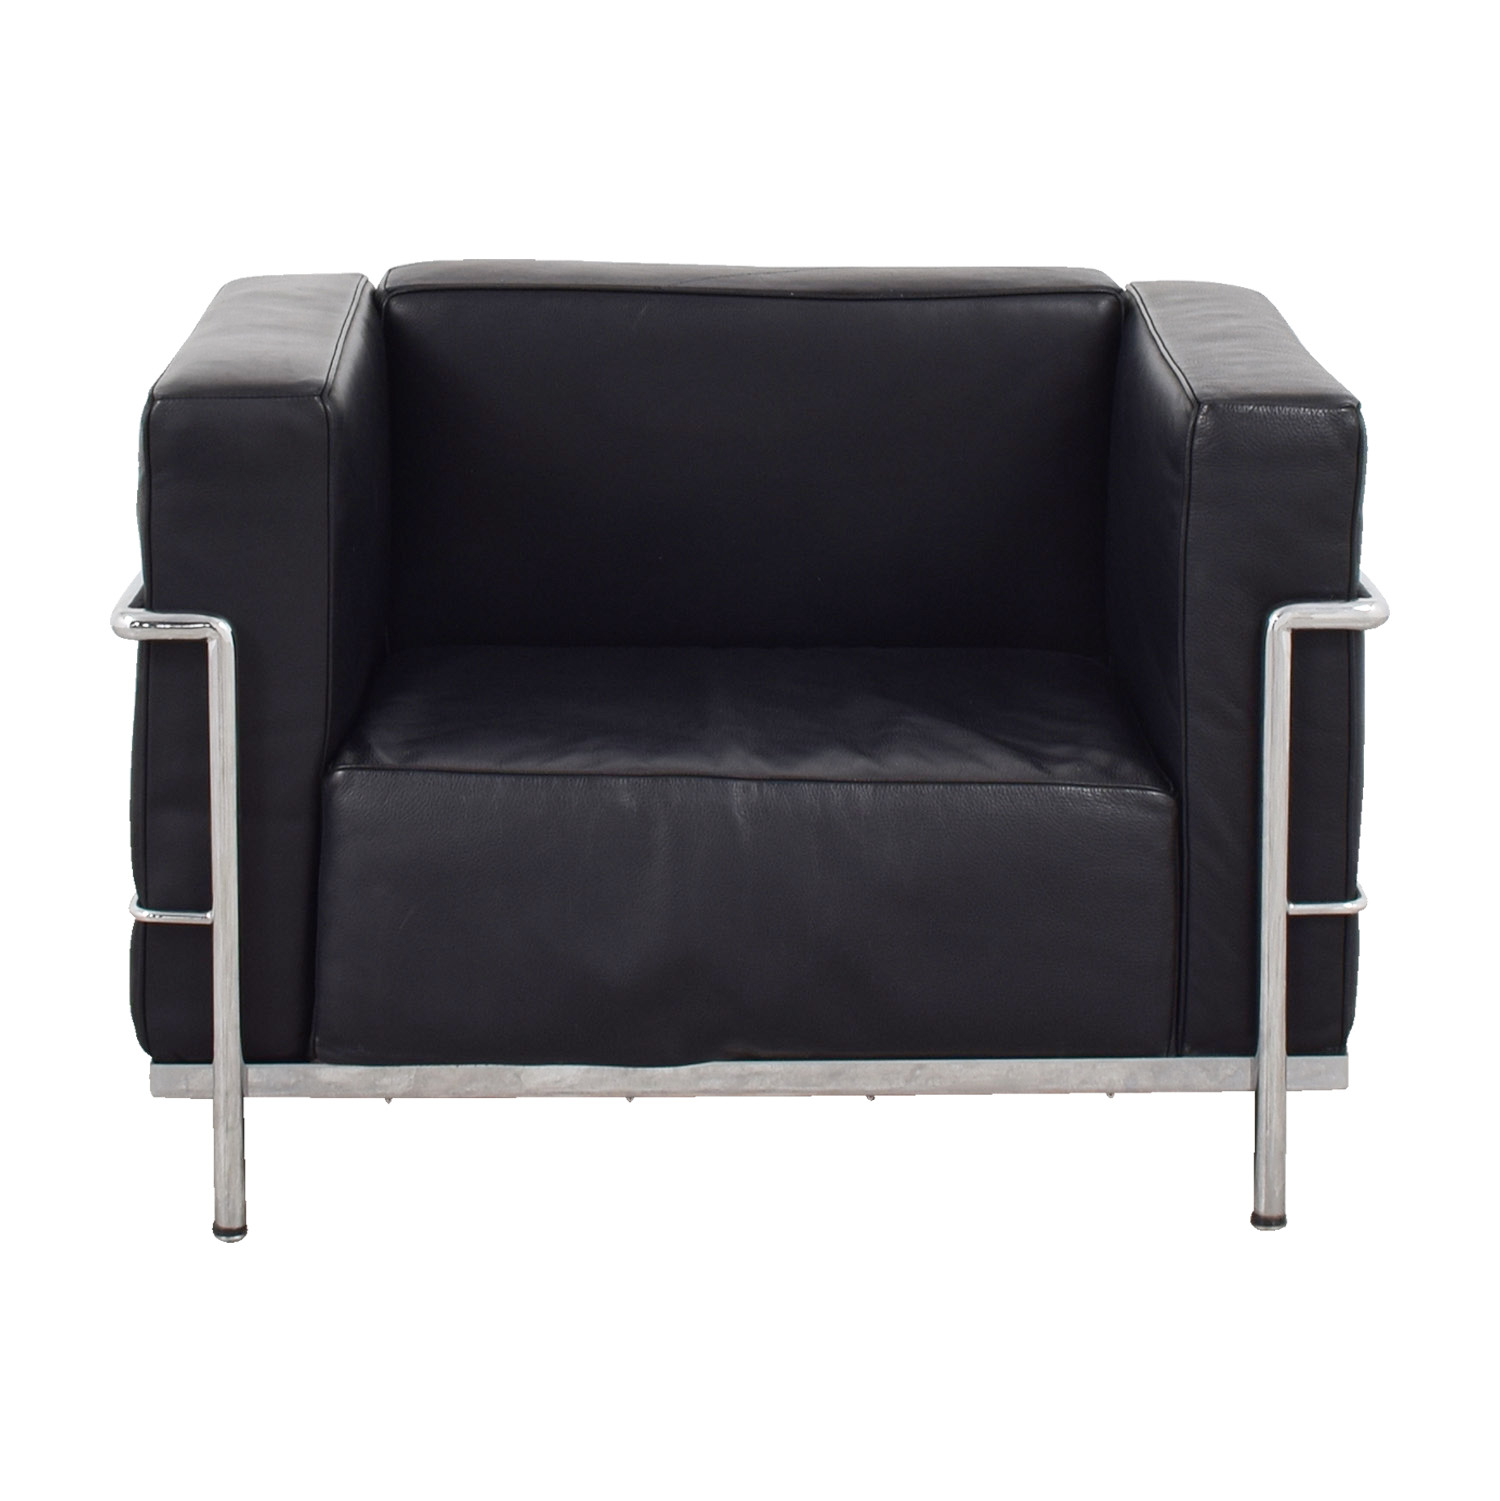 le corbusier sofa replica zgallerie 79 off black lounge chair chairs